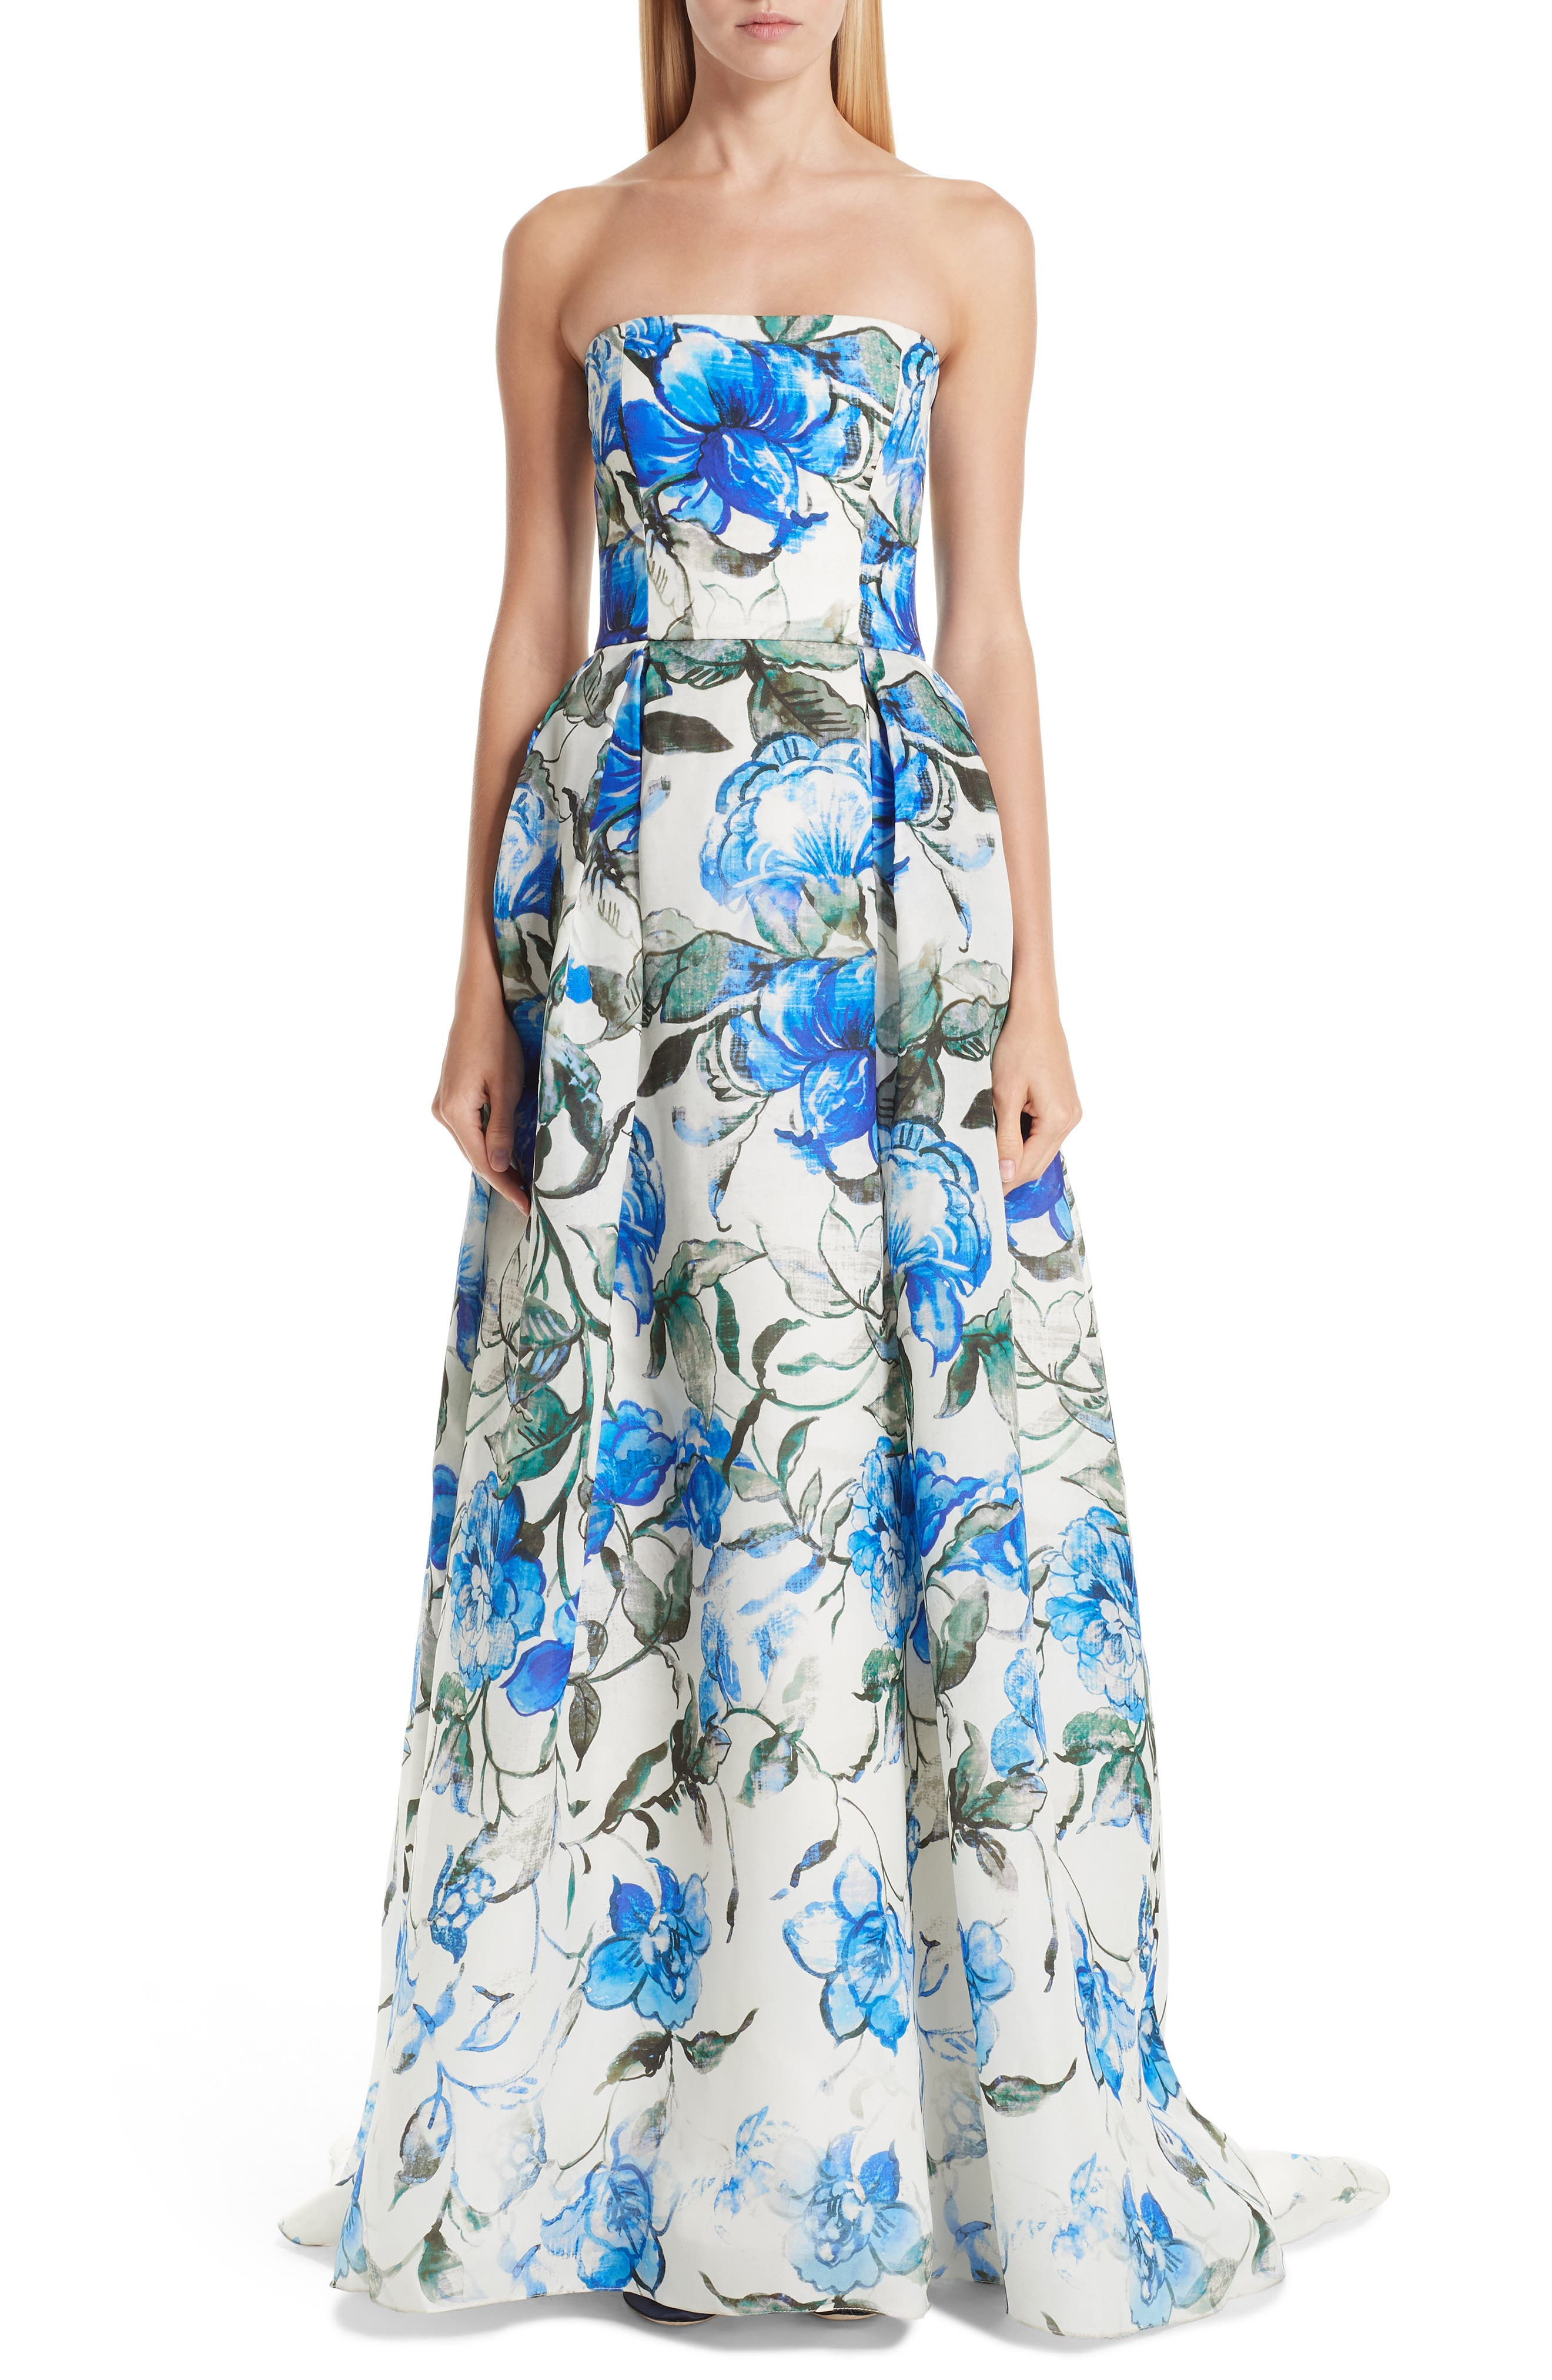 Carolina Herrera Floral Strapless Silk Evening Dress, Ivory